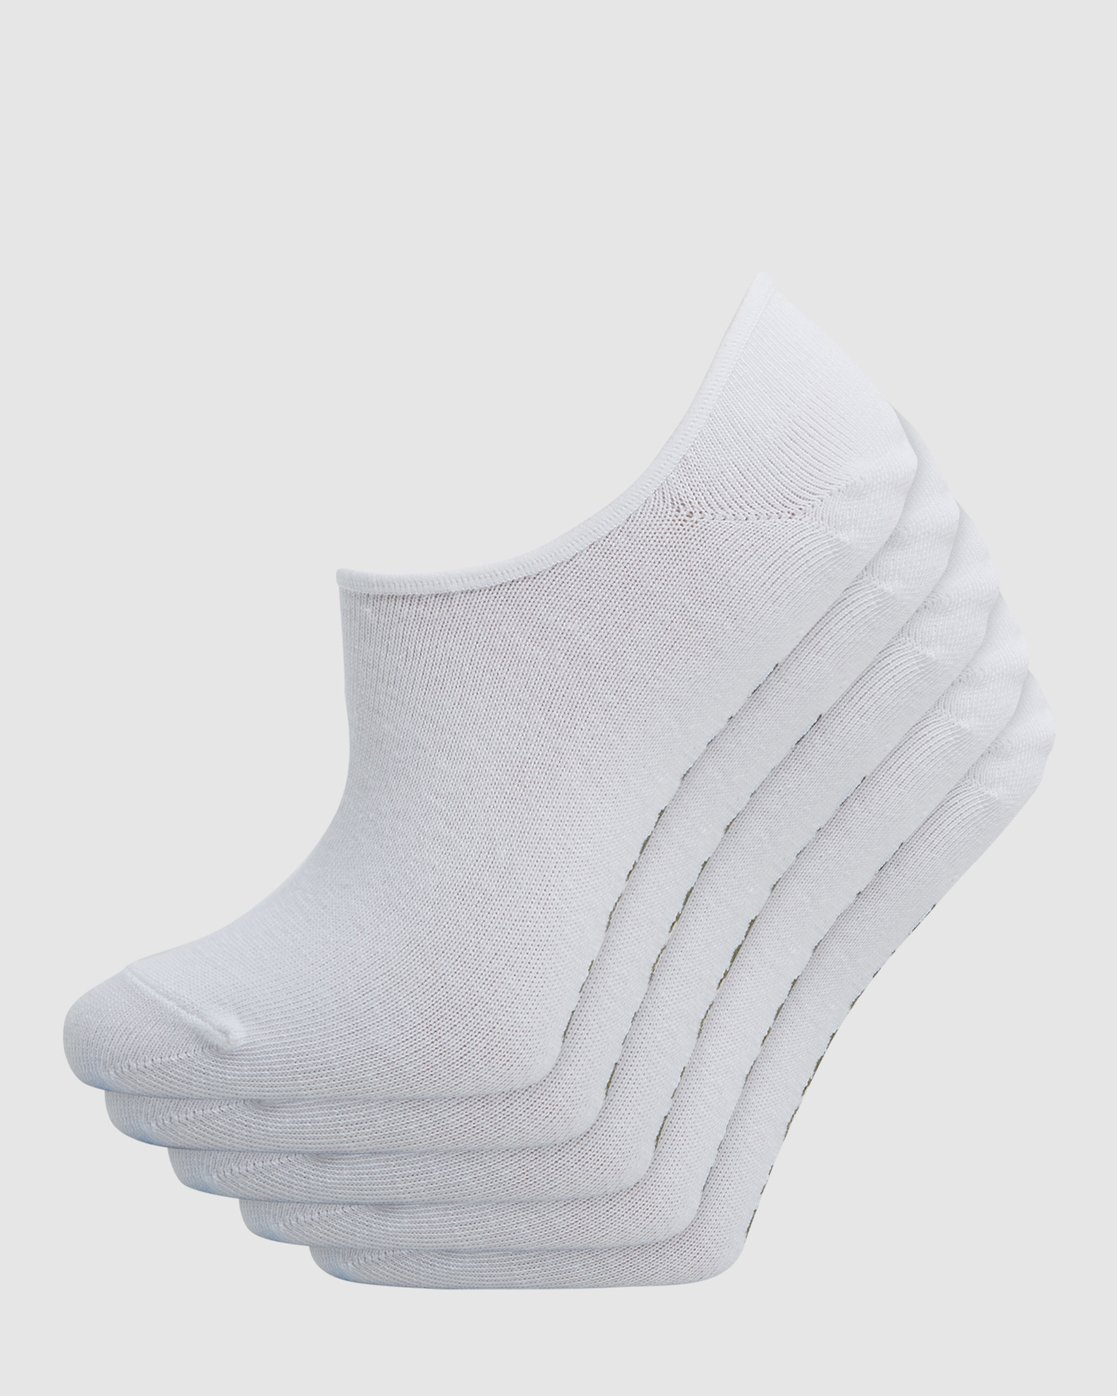 0 ELEMENT NUDIE SOCK 5 PACK White 283691 Element